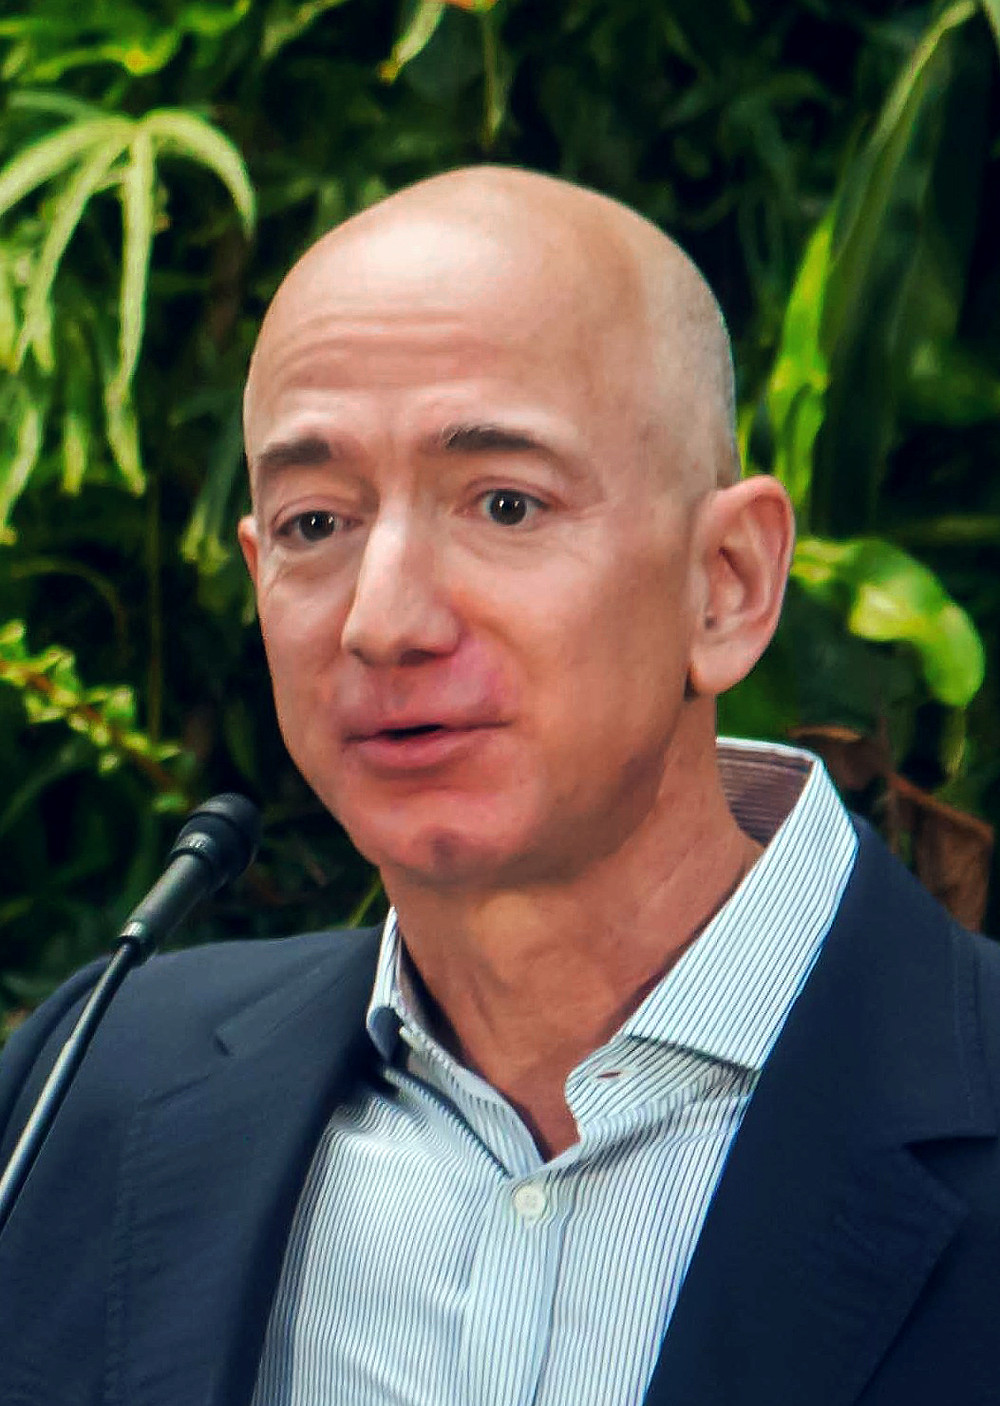 Jeff Bezos By Seattle City Council from Seattle